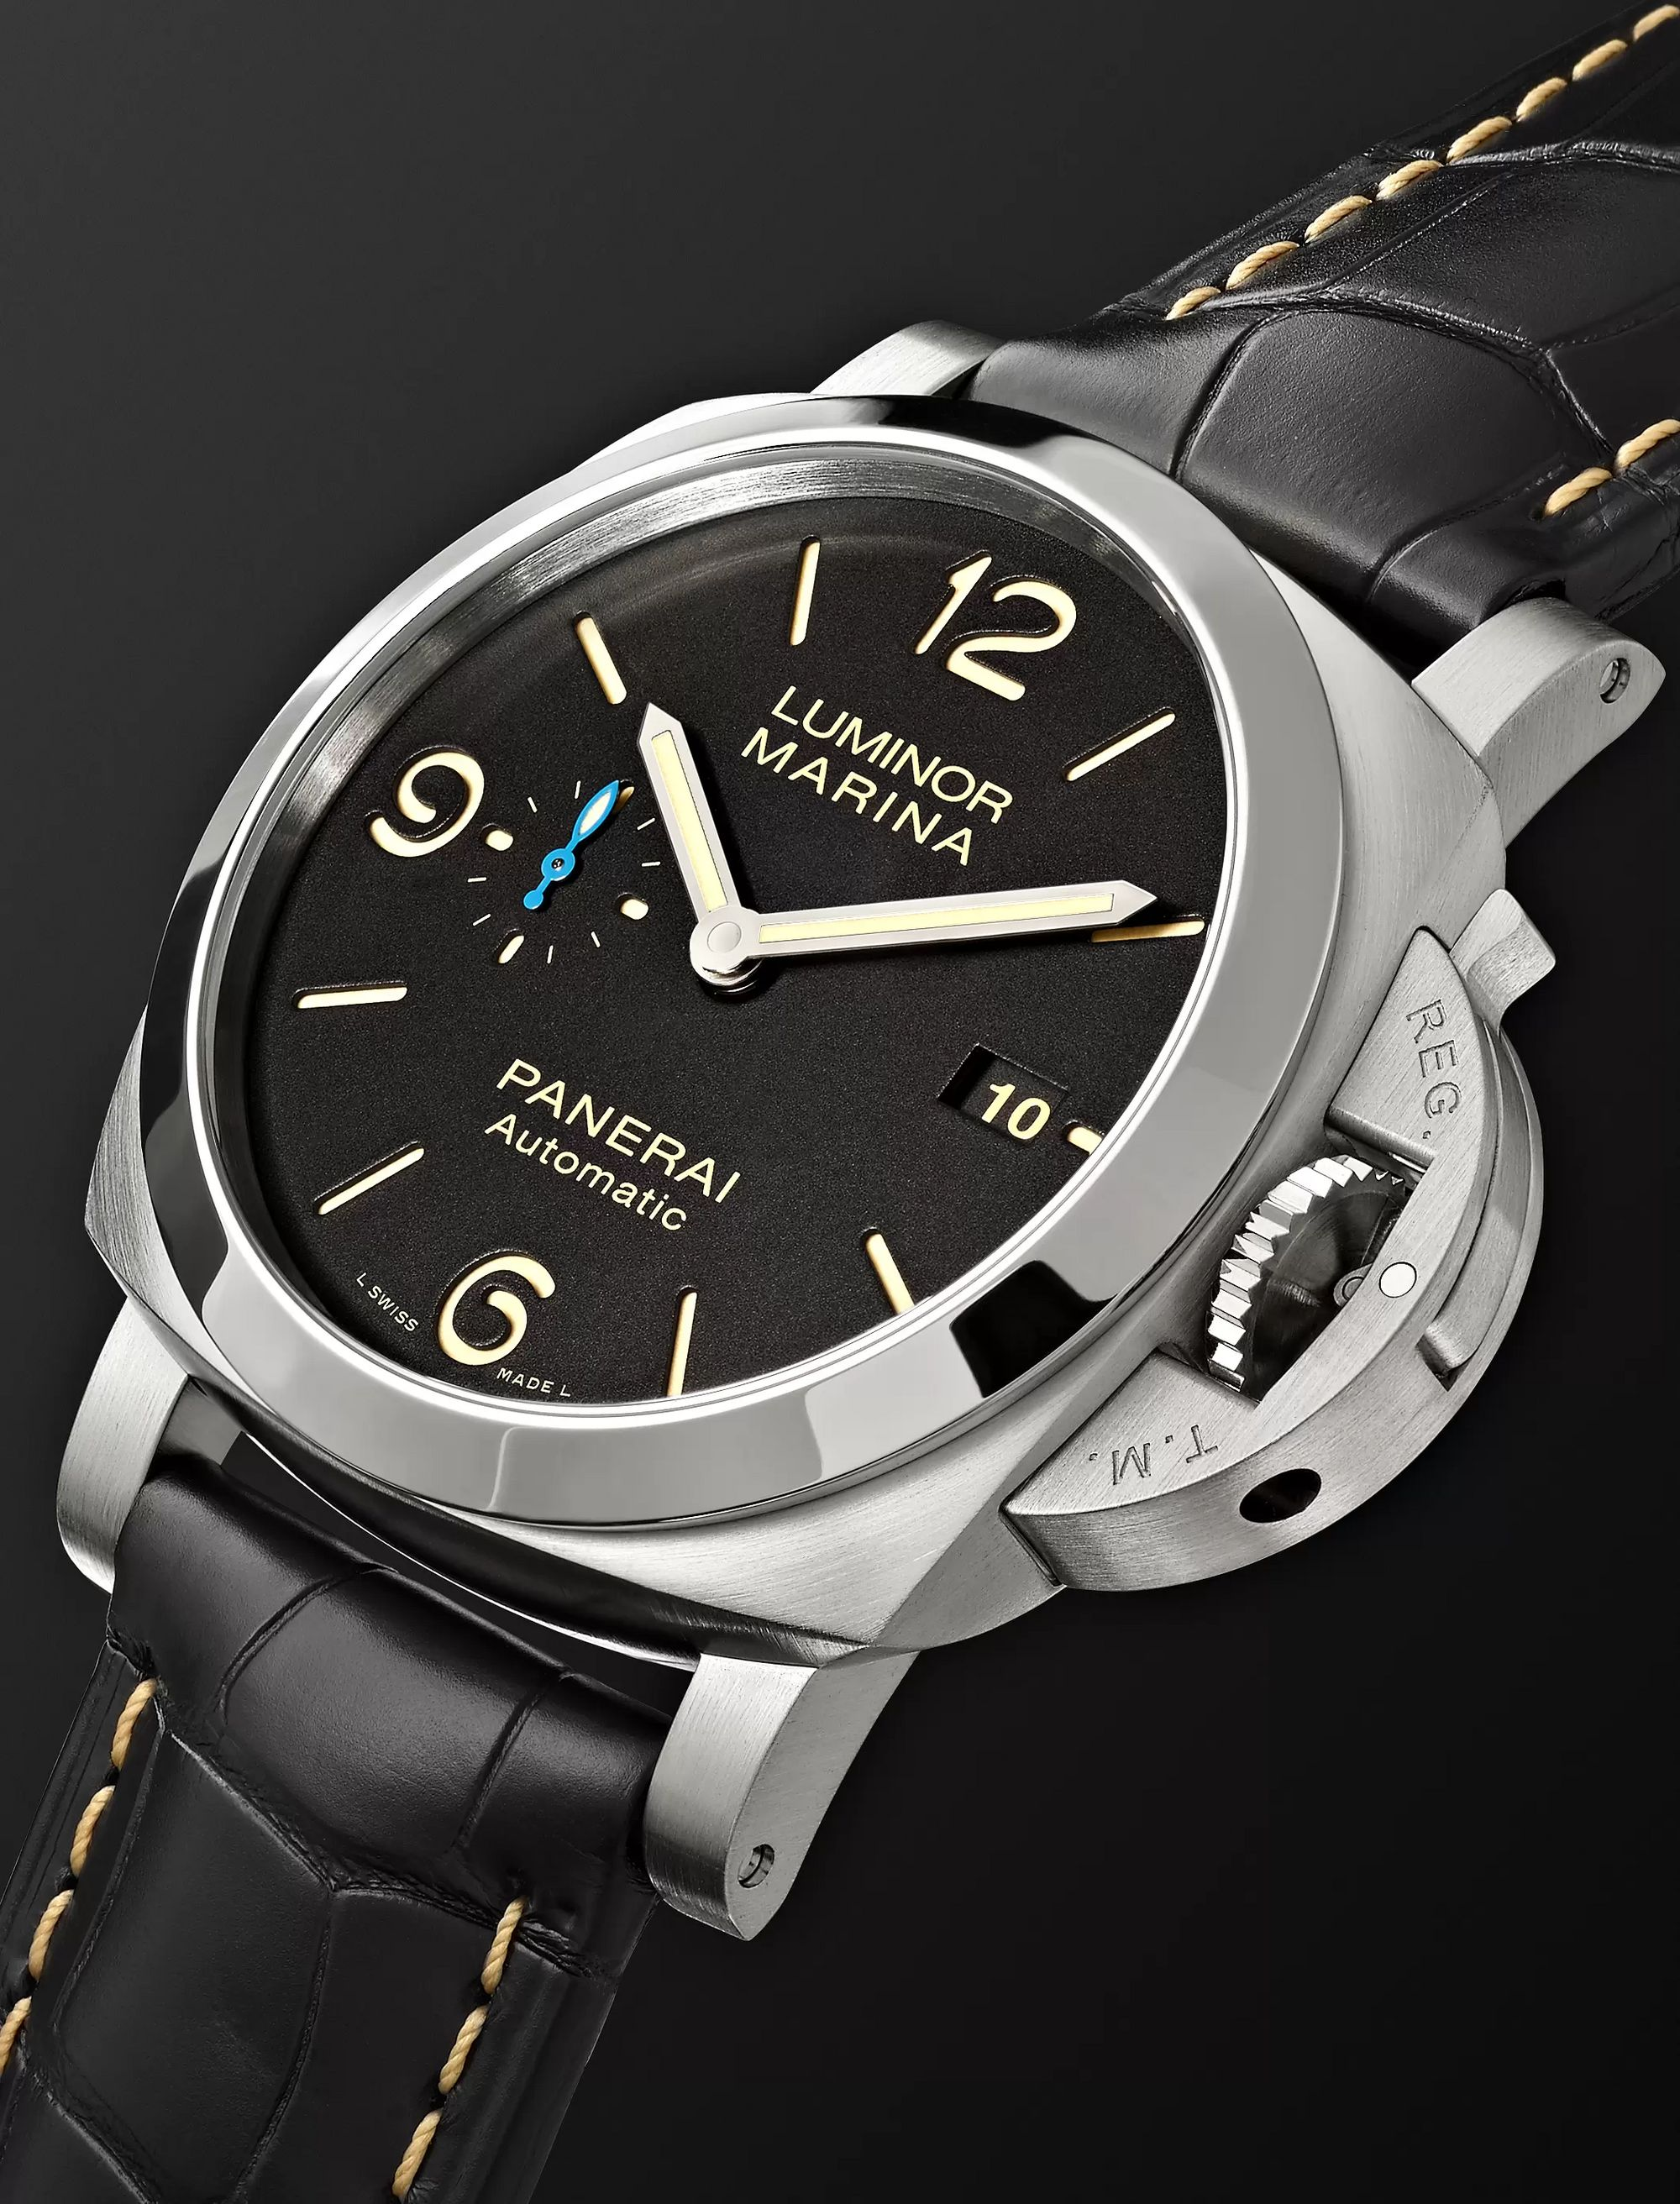 Panerai Luminor Marina 1950 3 Days Acciaio 44mm Stainless Steel and Alligator Watch, Ref. No. PAM01312